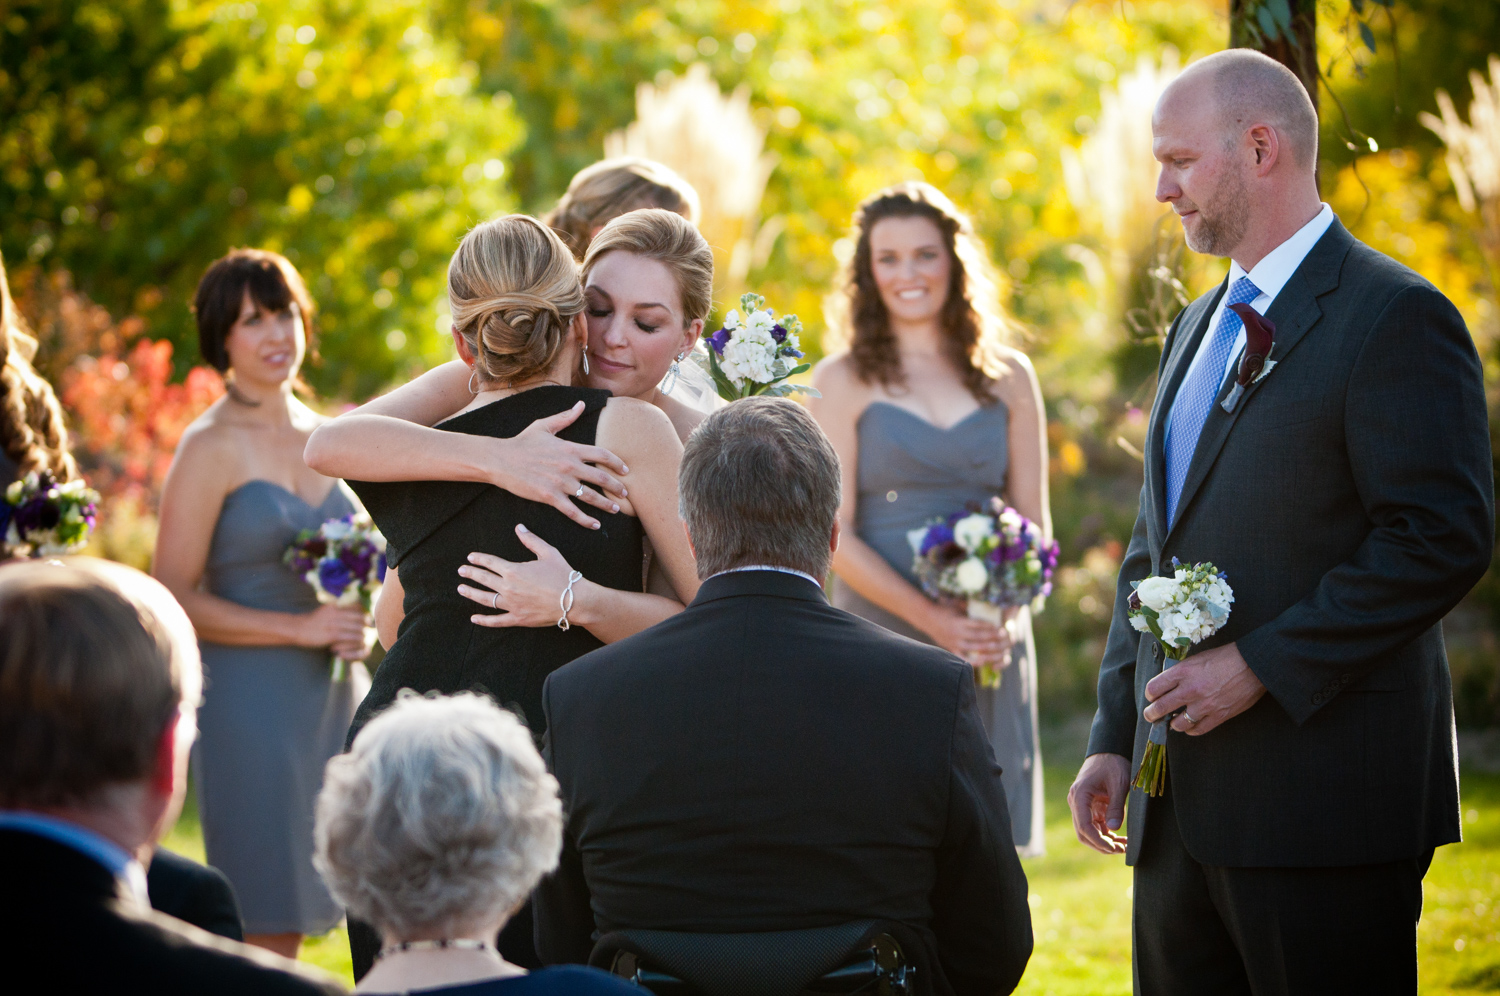 Crooked_Willow_Farms__Sedalia_Wedding_029.JPG